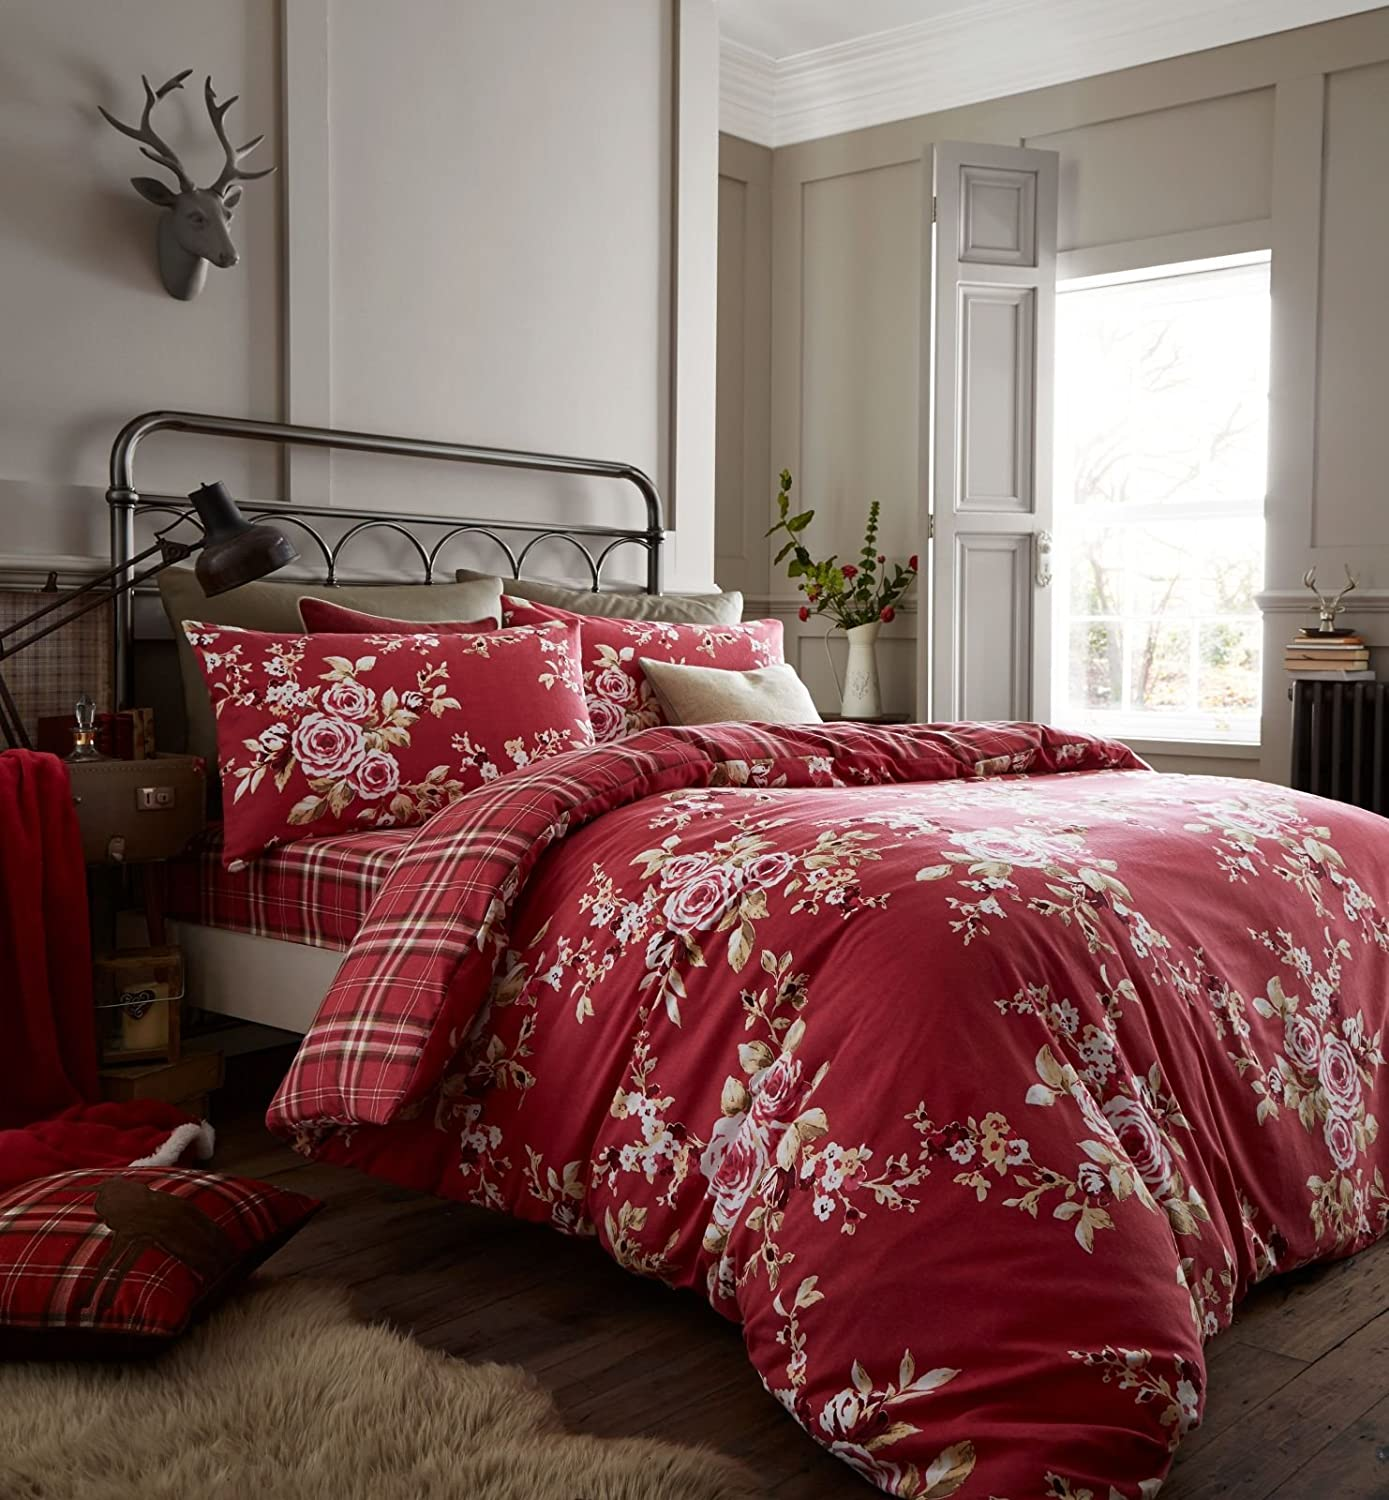 Catherine Lansfield Canterbury Brushed Check Duvet Set, Dark Red, Double Turner Bianca BD/28239/W/DQS/DRE